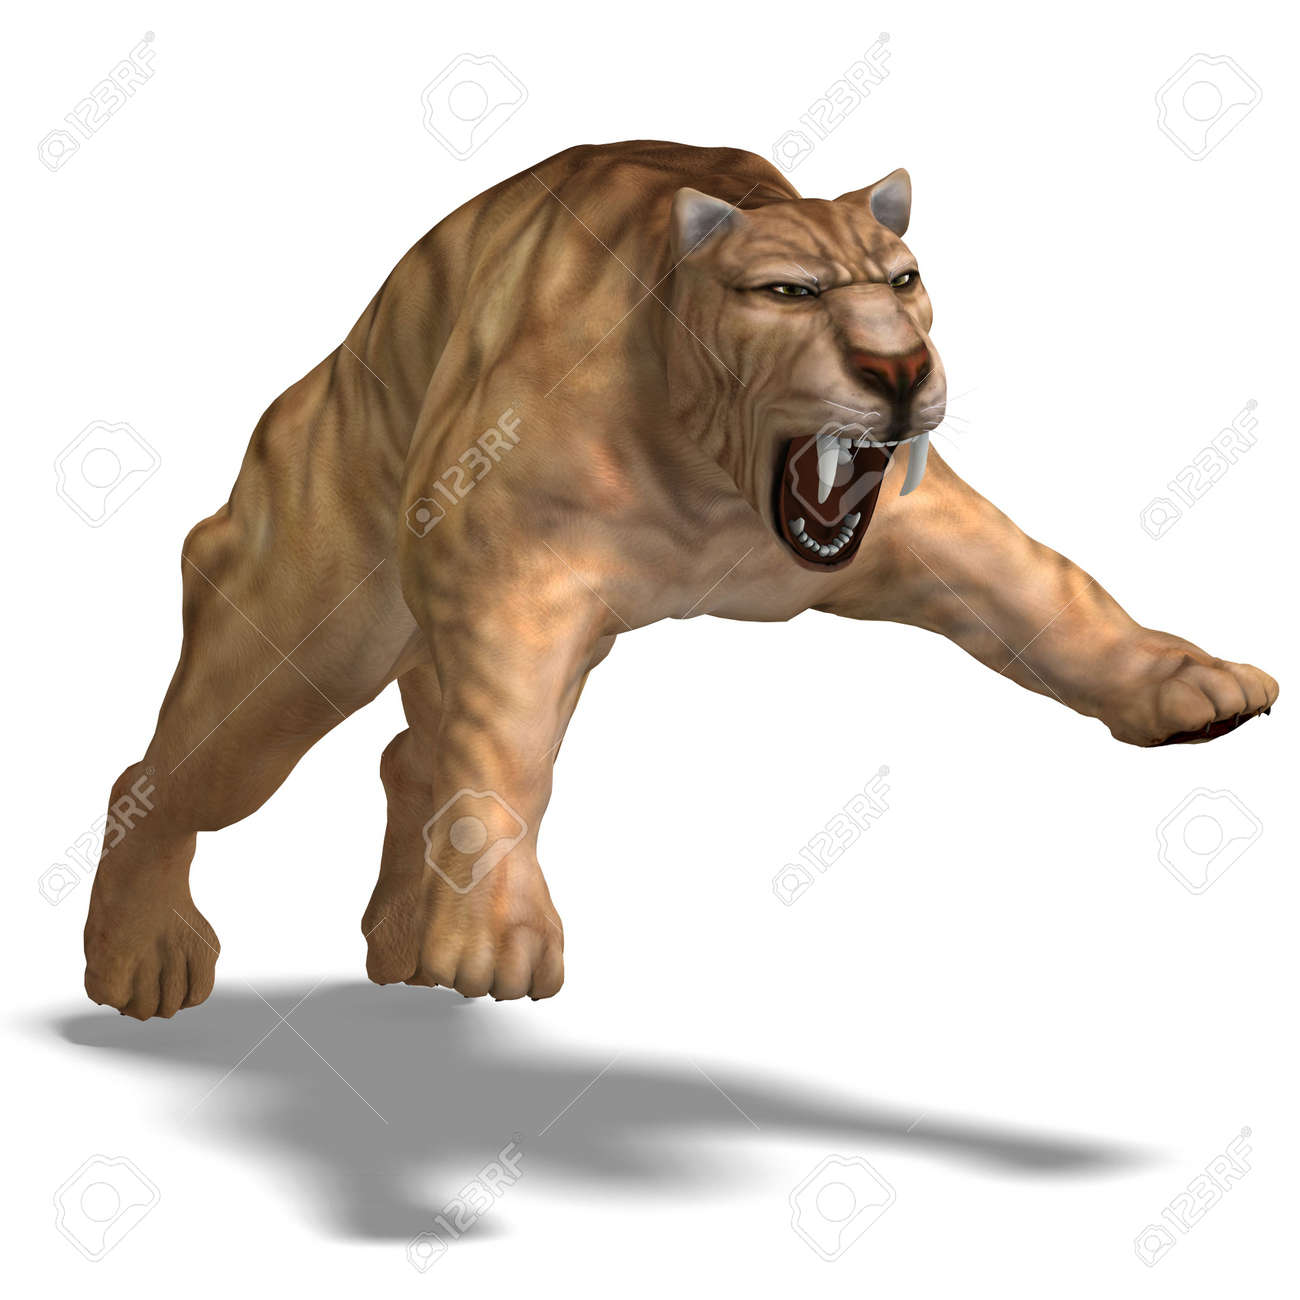 67 sabertooth tiger cliparts stock vector and royalty free